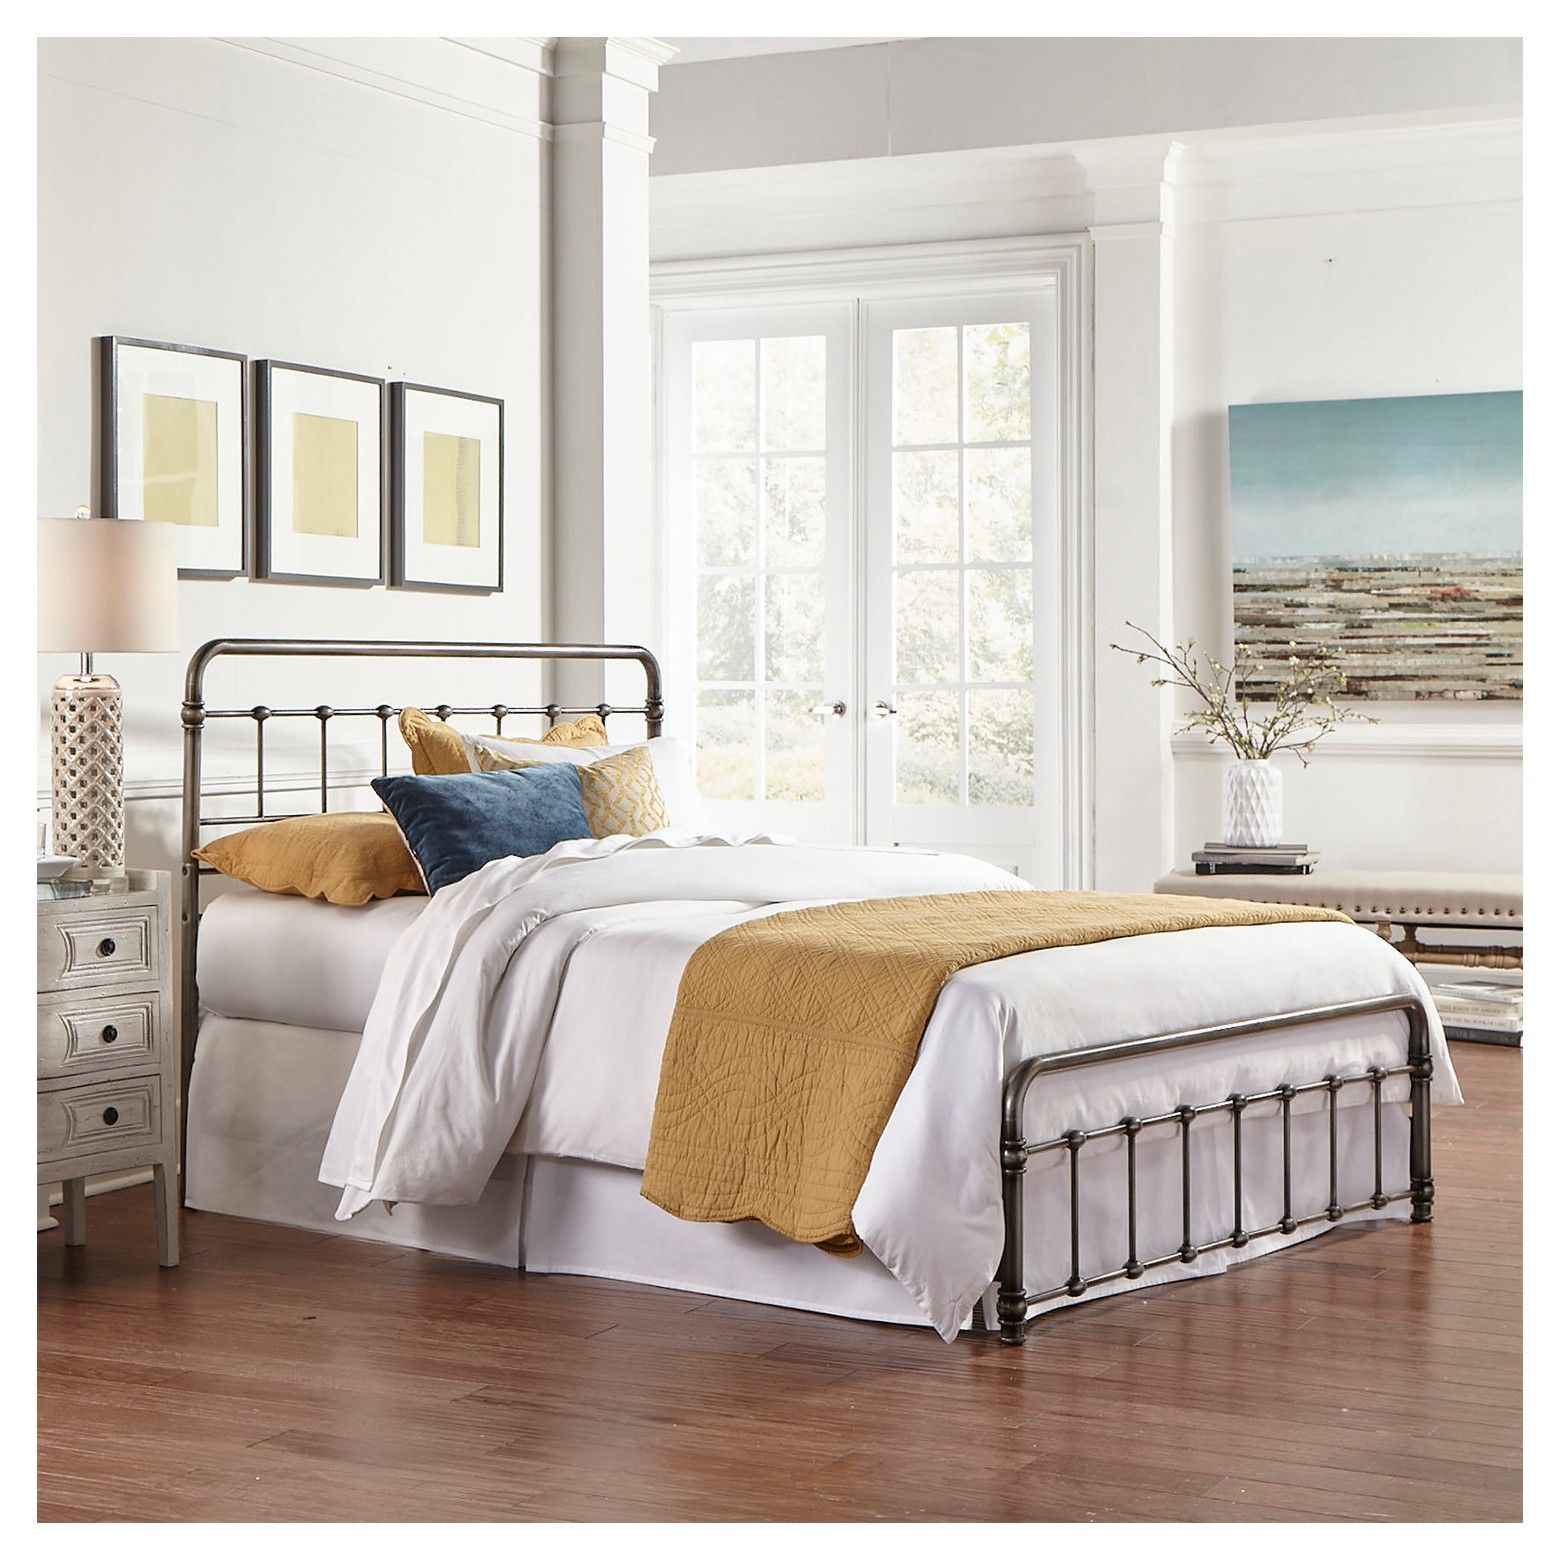 Fremont Bed Weathered Nickel Full Fashion Bed Group